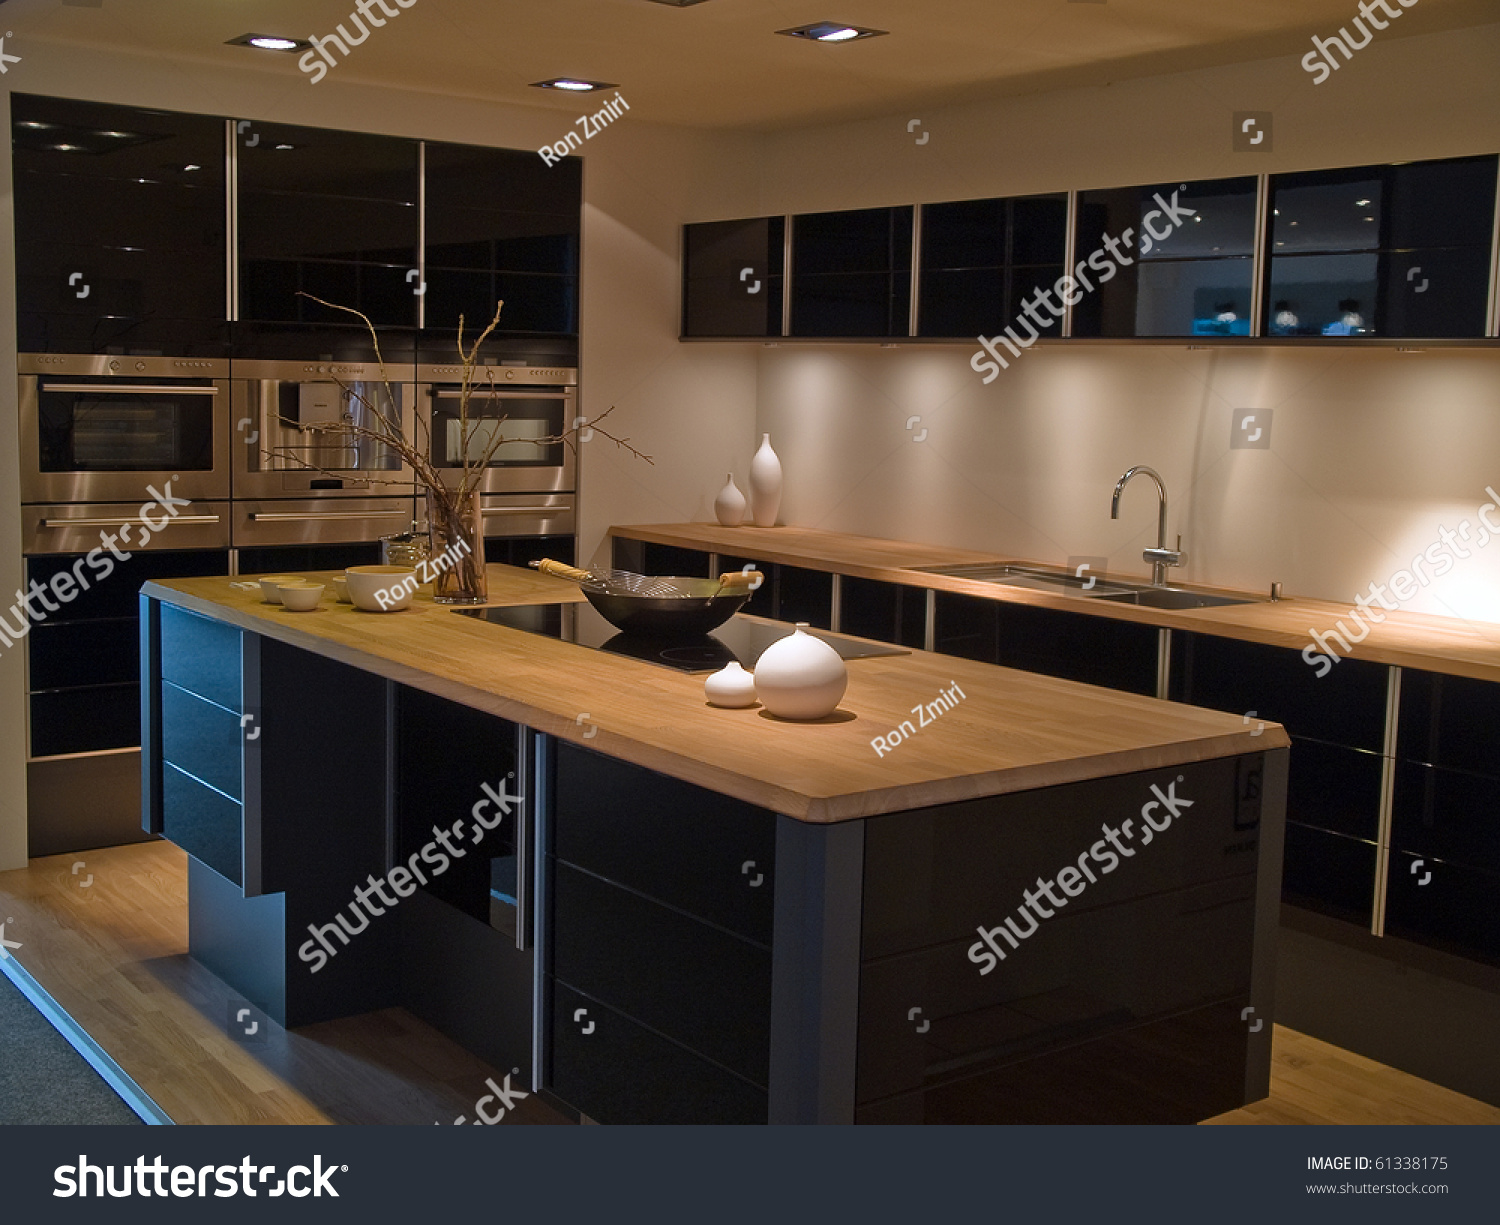 Modern Design Trendy Kitchen With Black And Wood Elements Stock Photo 61338175 Shutterstock